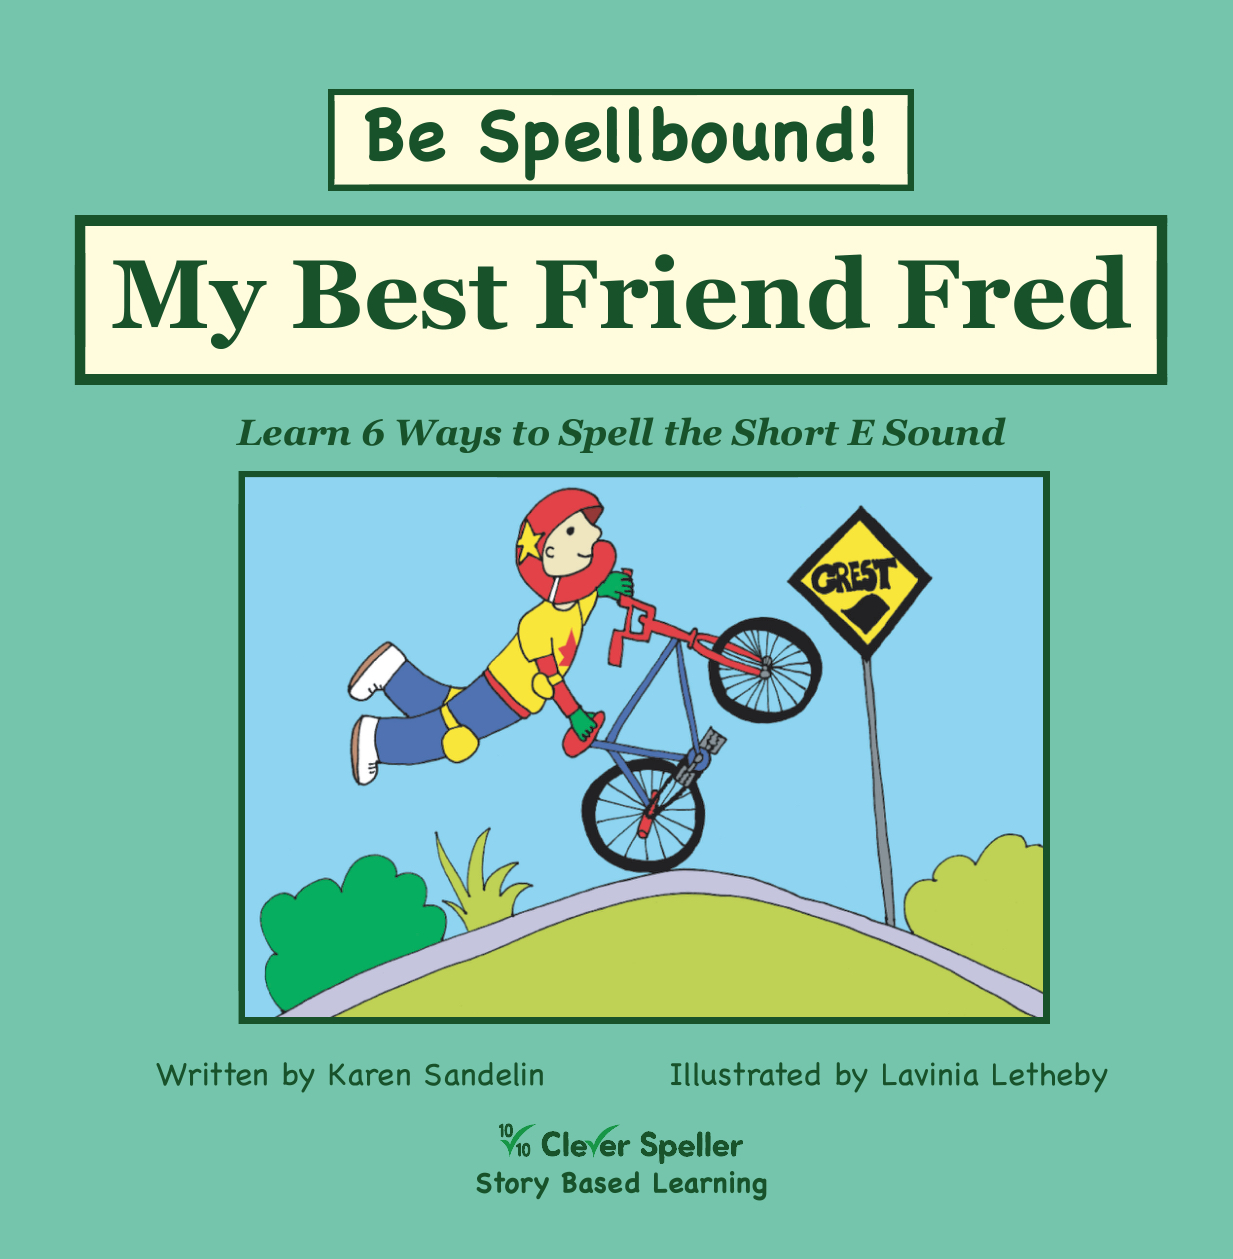 Learn 6 Ways to Spell Short E